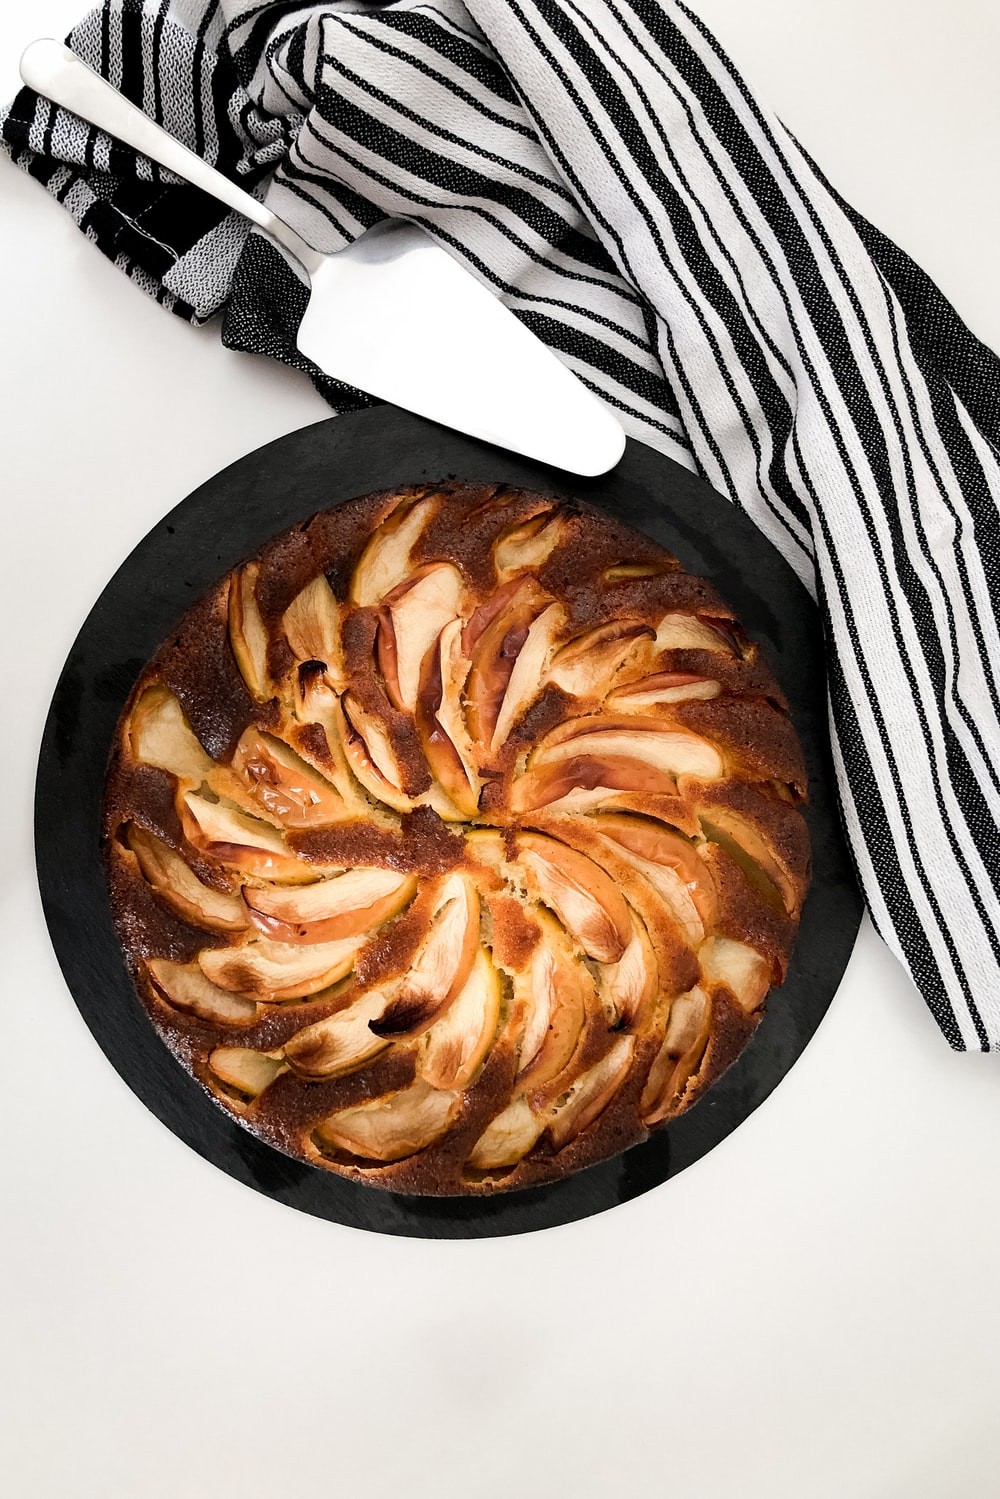 brown and white pastry on black plate